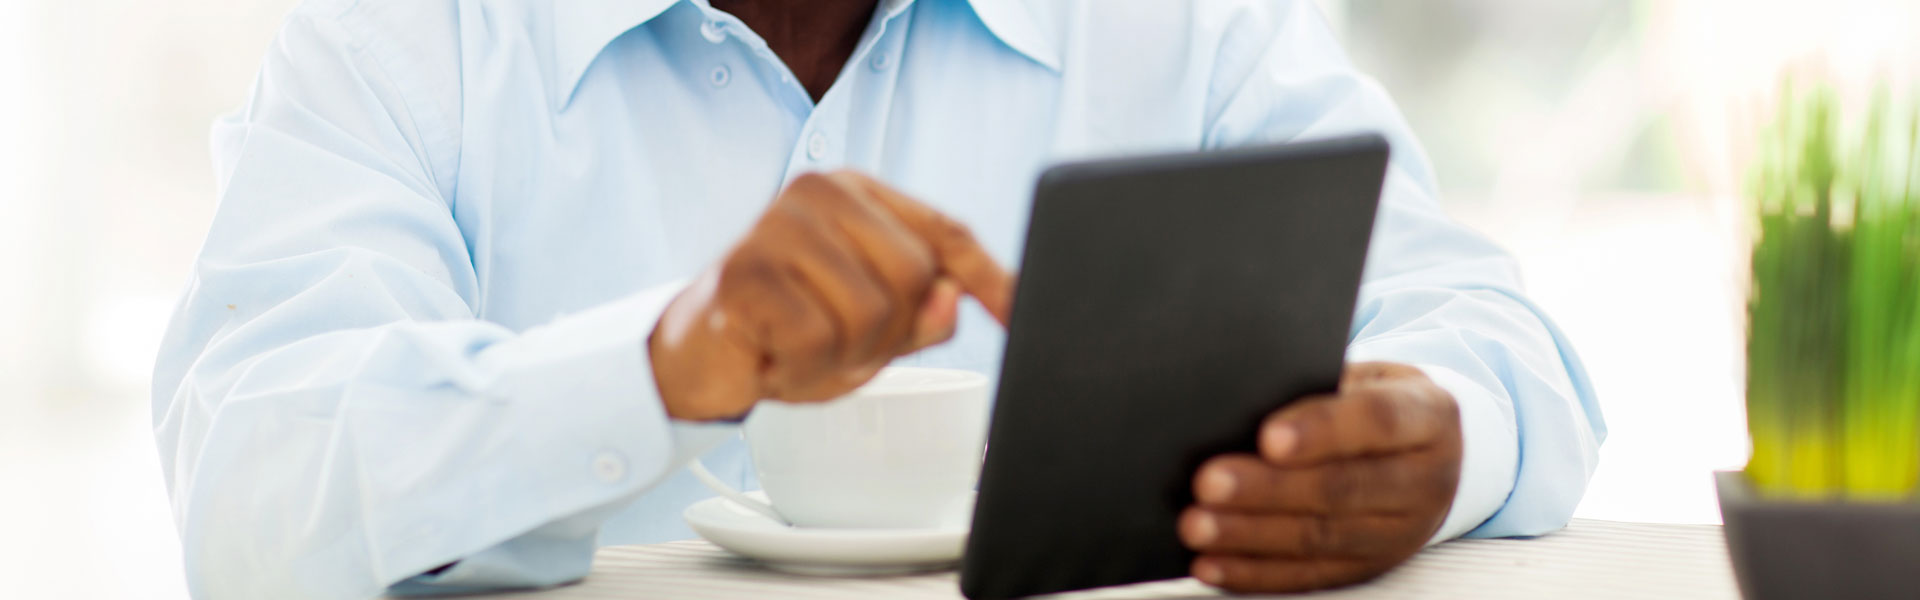 A man using a tablet and drinking coffee